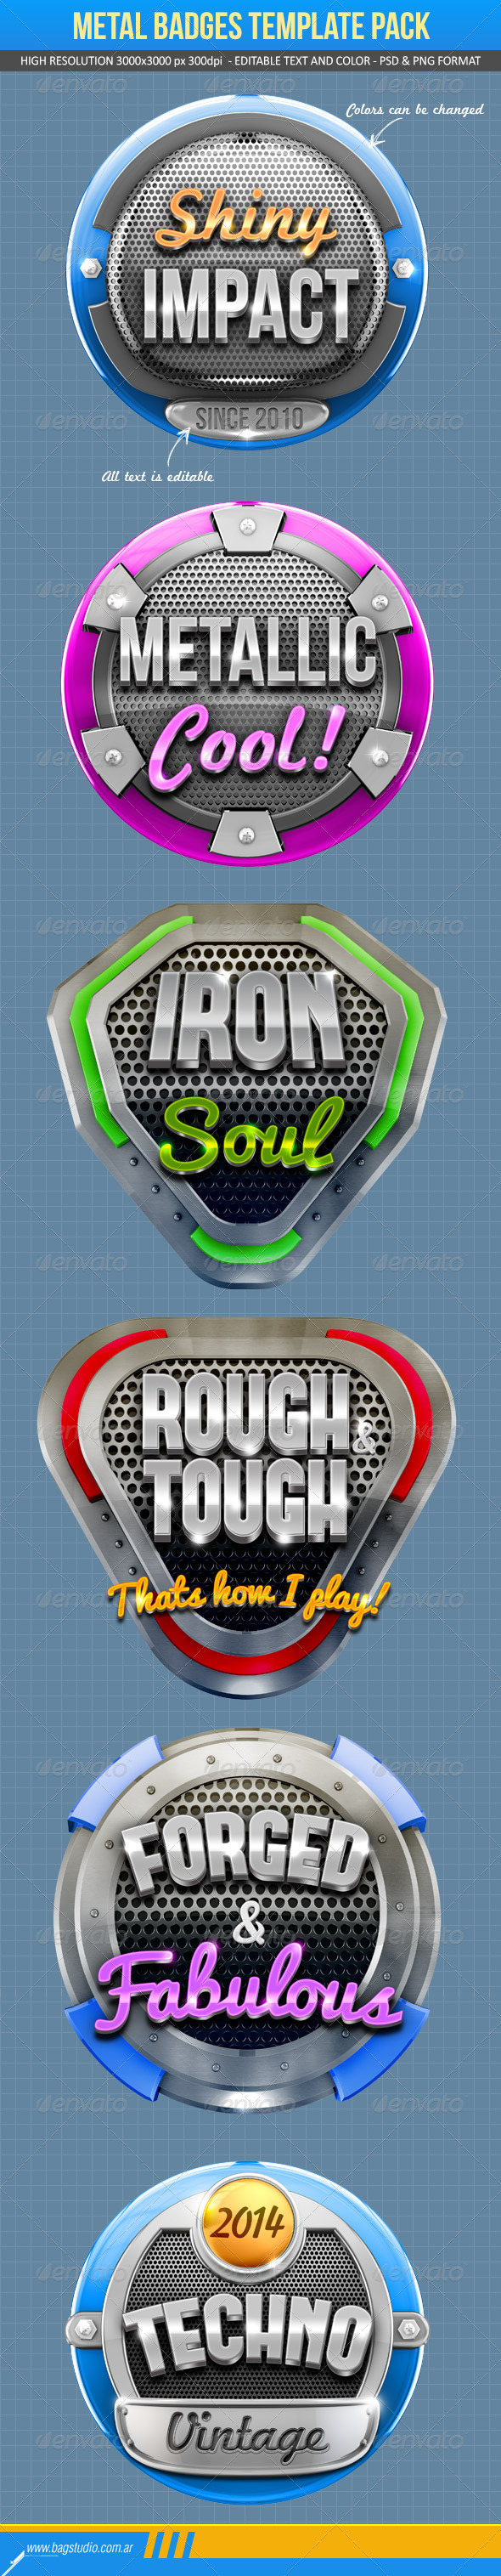 GraphicRiver Metal Badges Template Pack 7449023